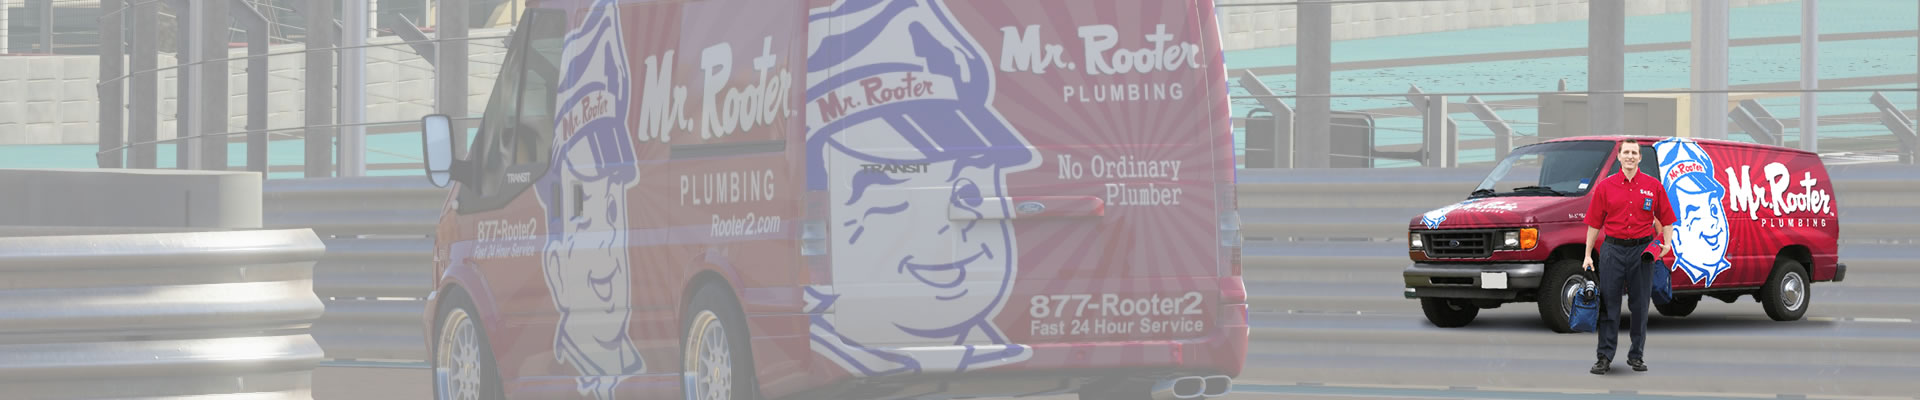 Plumbing Repair Services In Youngstown Oh Plumbers Near